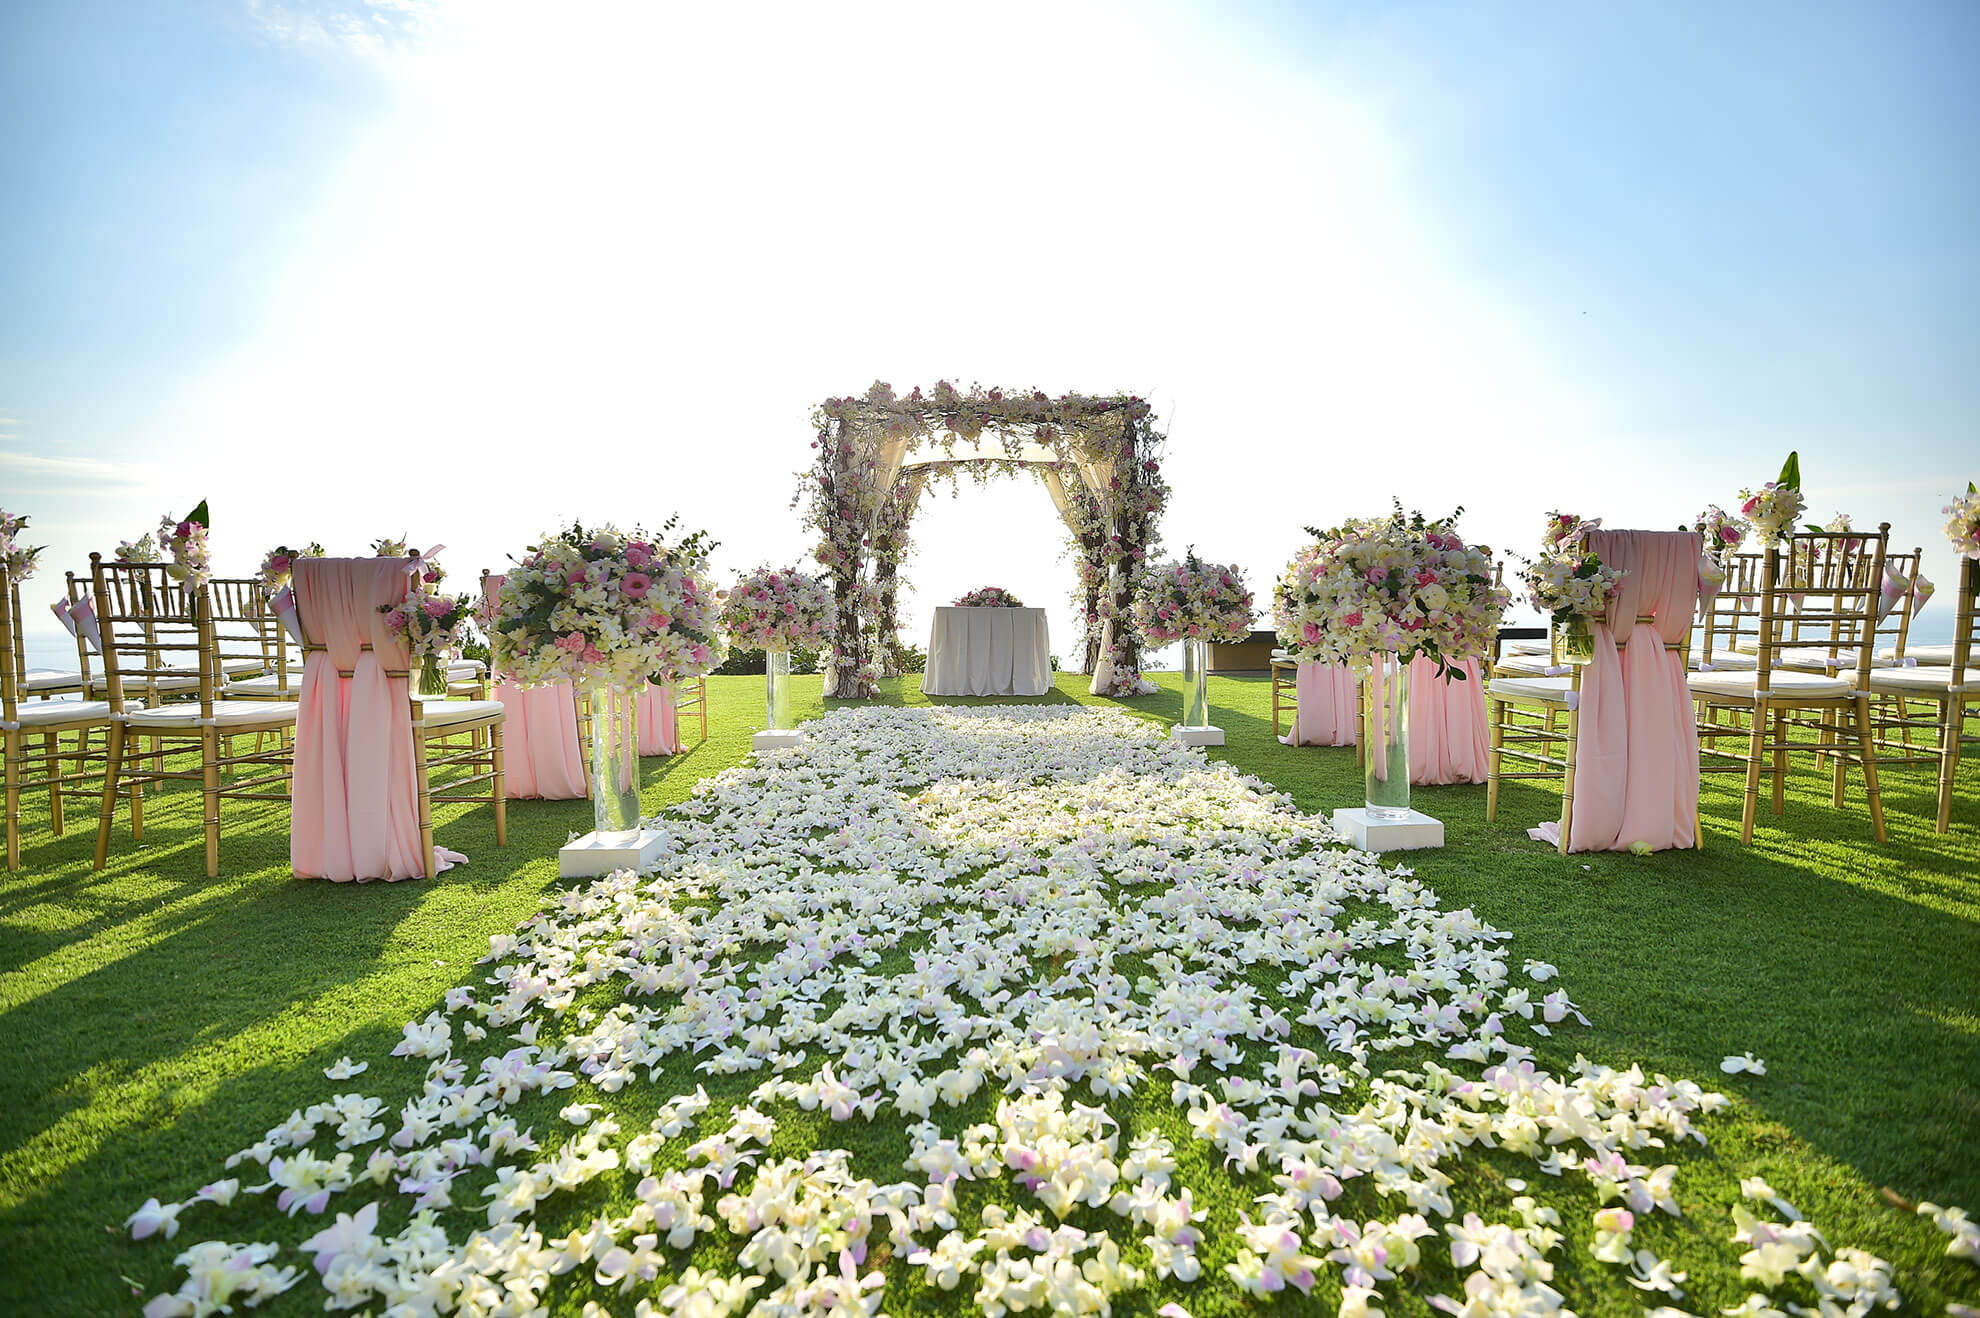 Wedding venues in utah salt lake bride blog lets take a look at what goes into choosing the right wedding venue for you and some of our local suggestions junglespirit Gallery